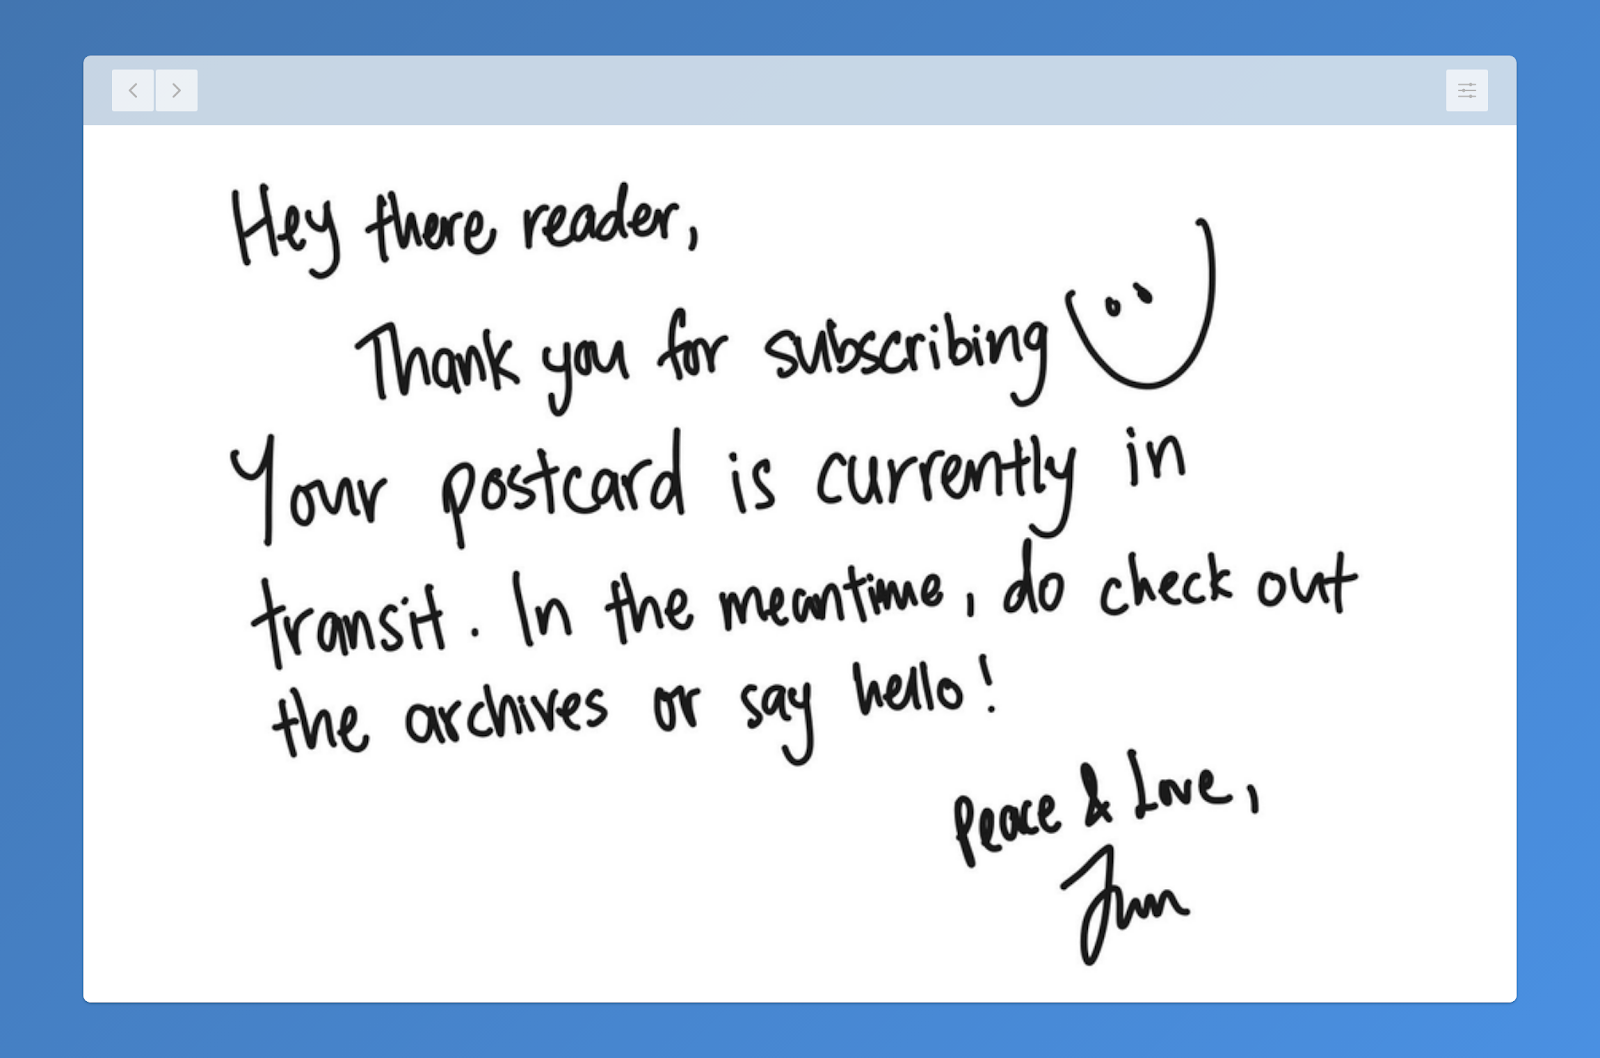 Personalized Welcome Note For Newsletter